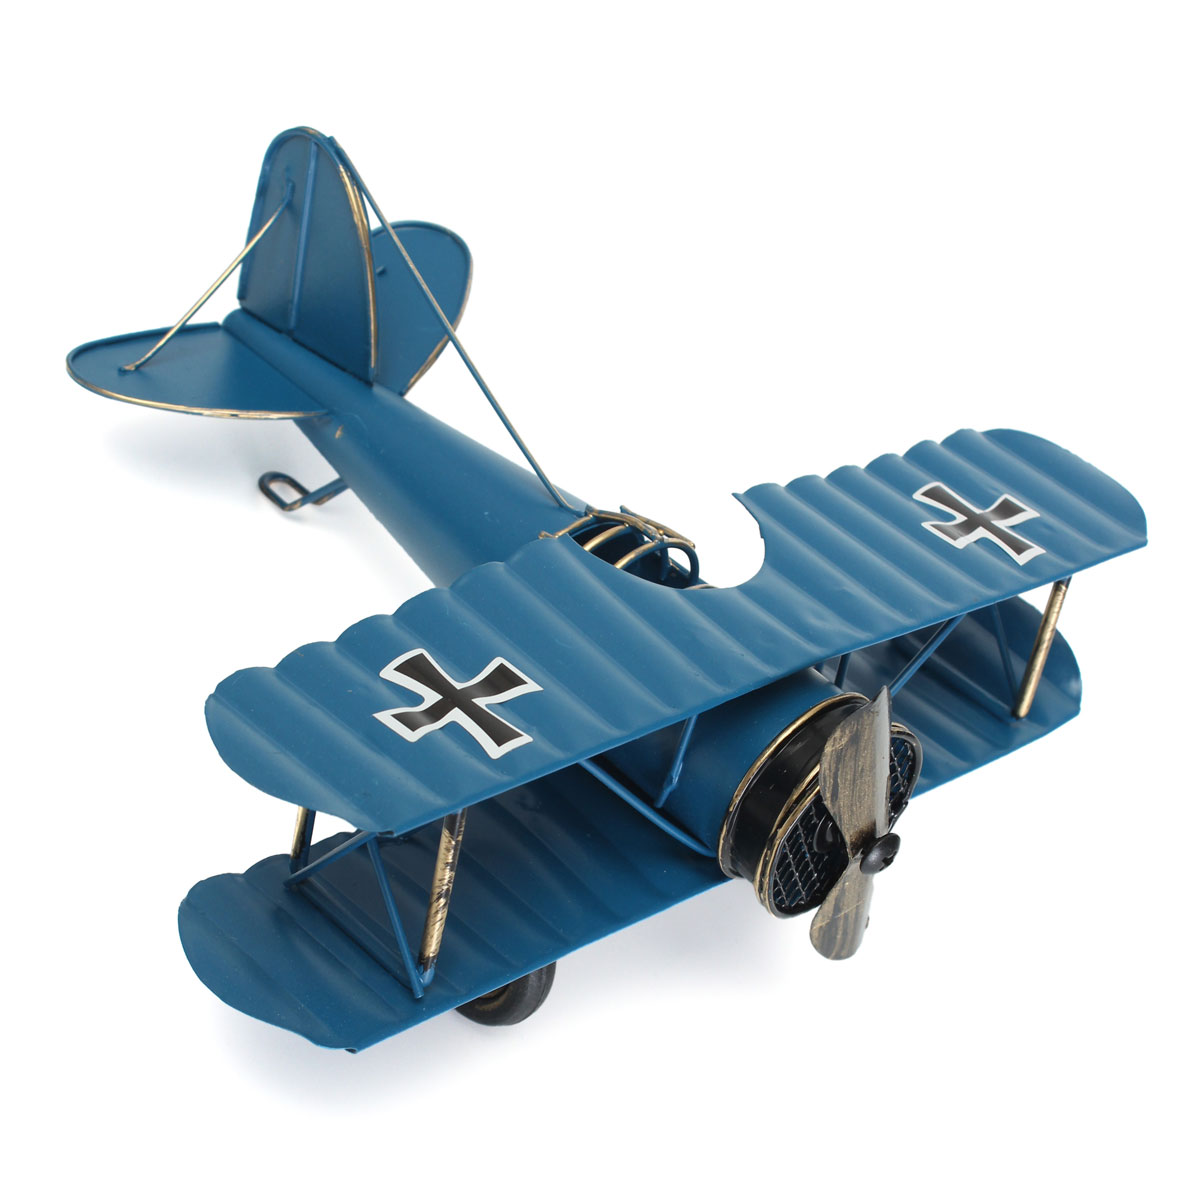 Diy Vintage Large Retro Blue Plane Airplane Aircraft